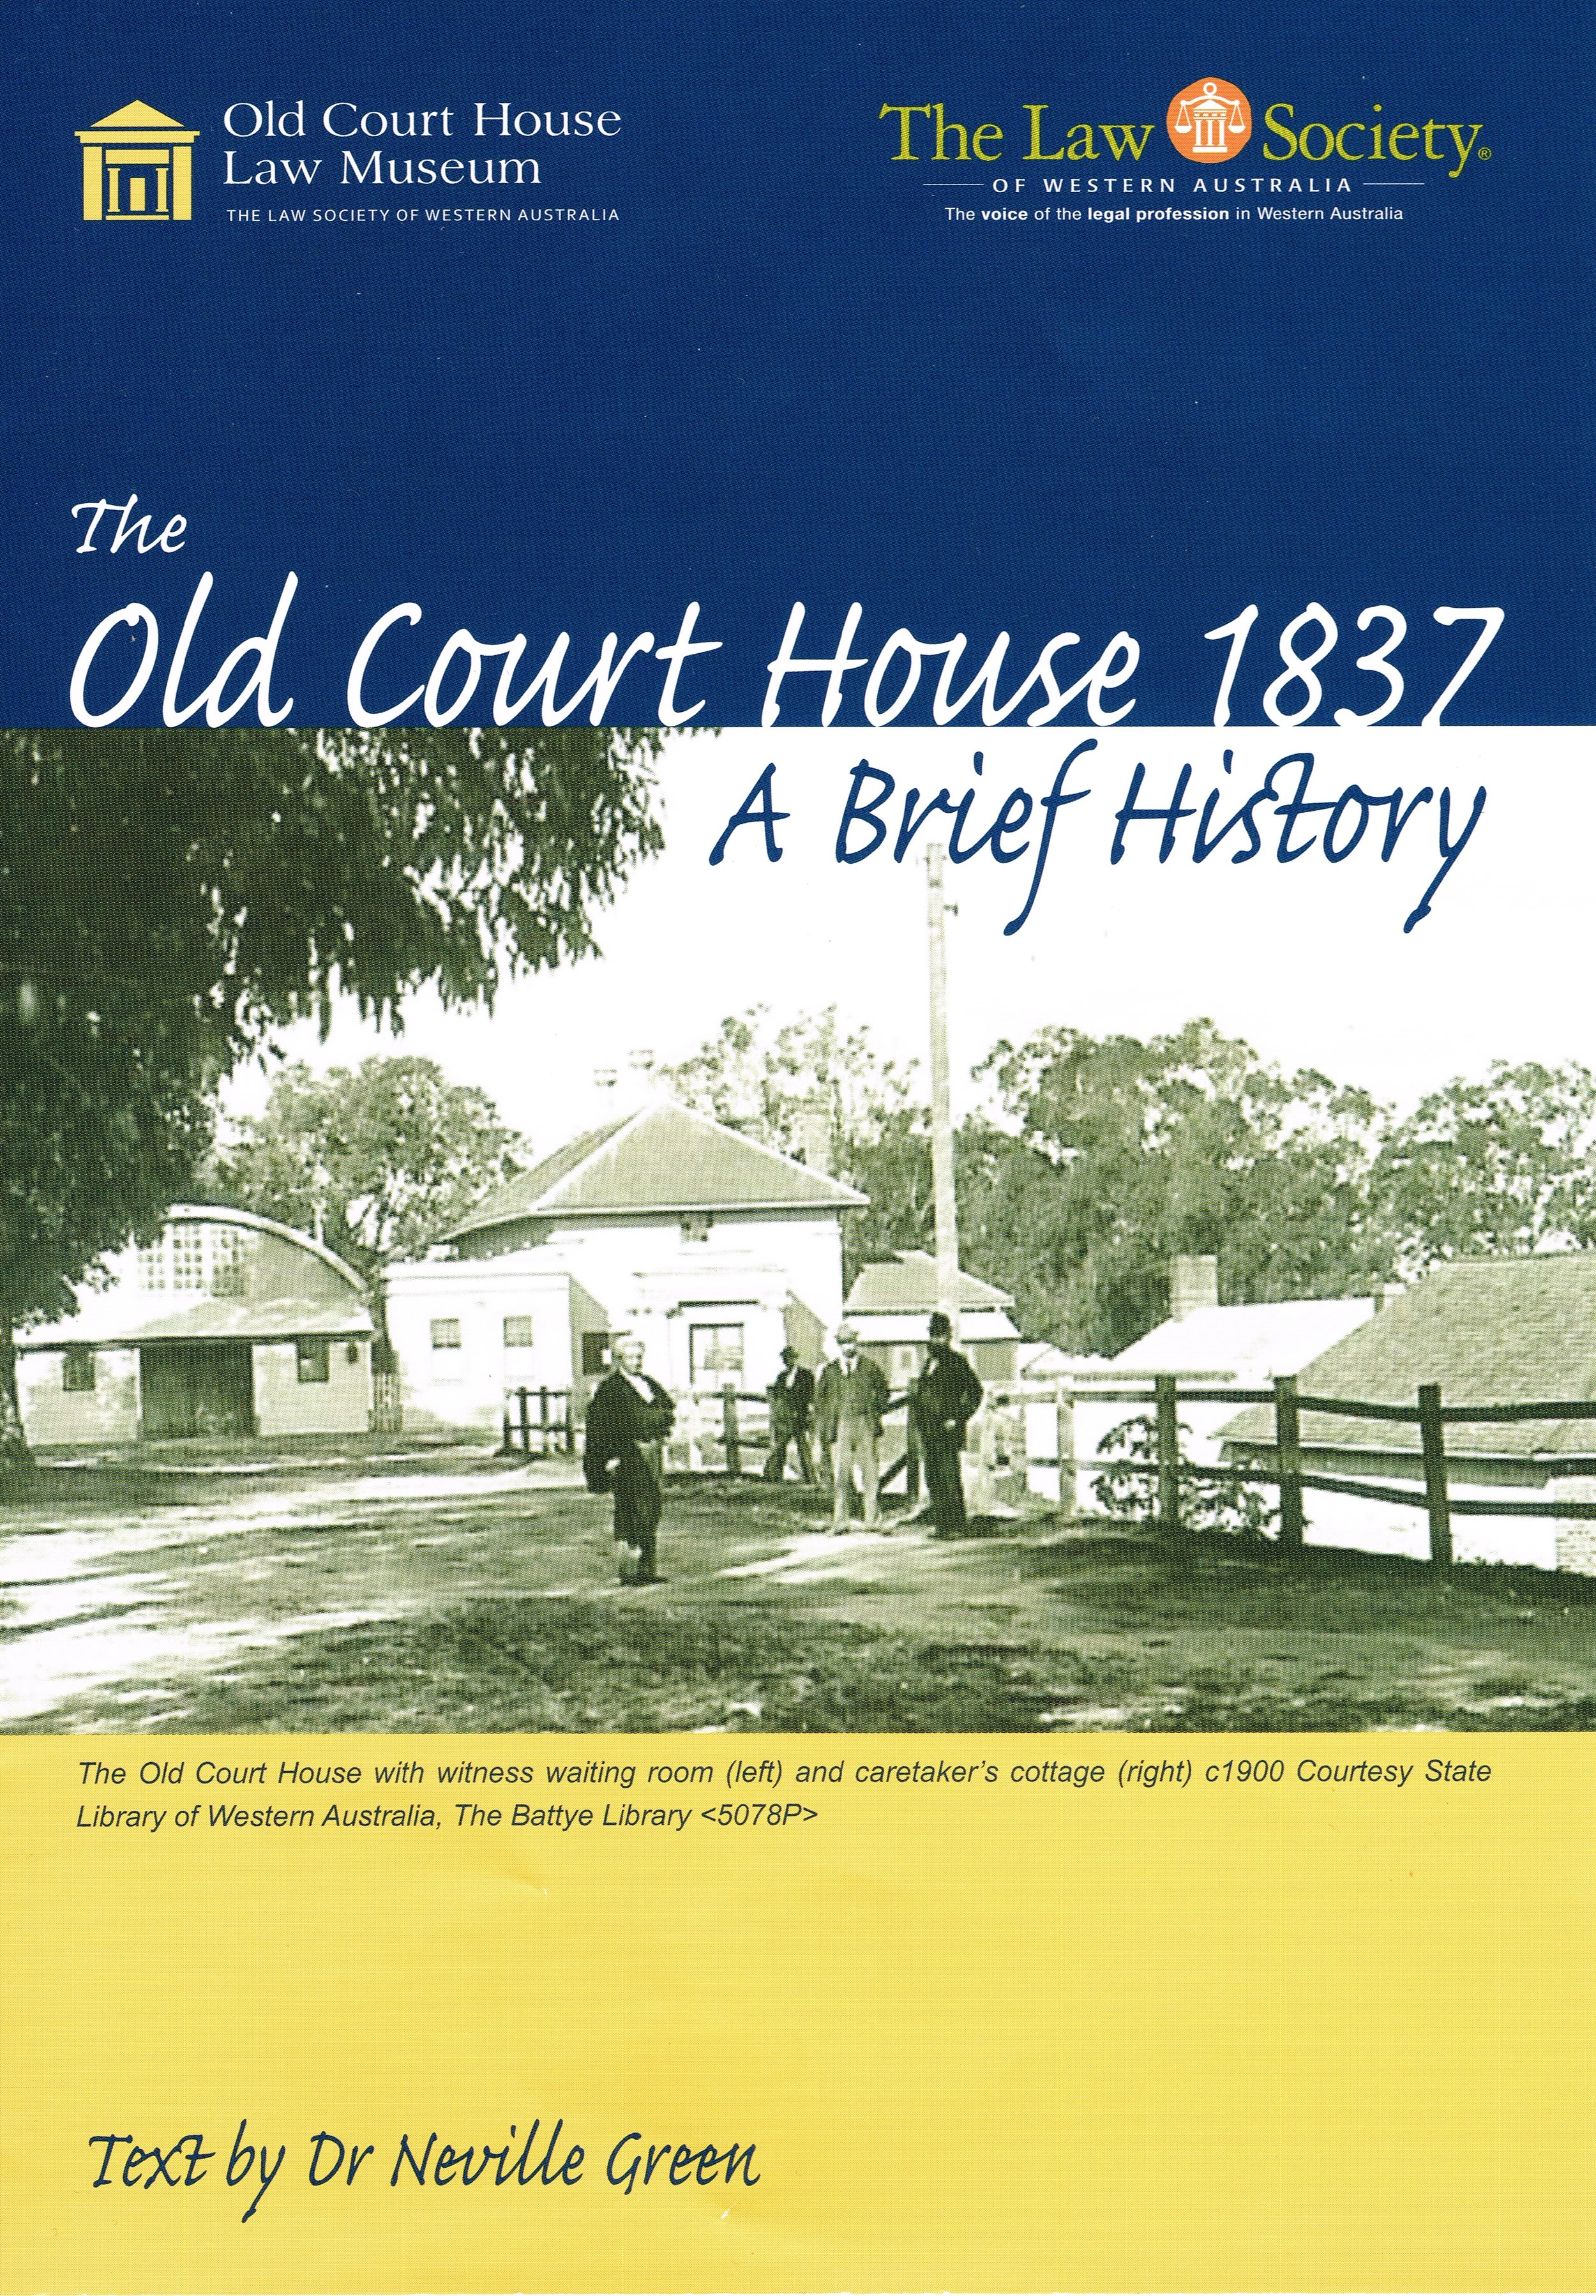 The Old Court House 1837 : A brief history   Text by Dr Neville Green